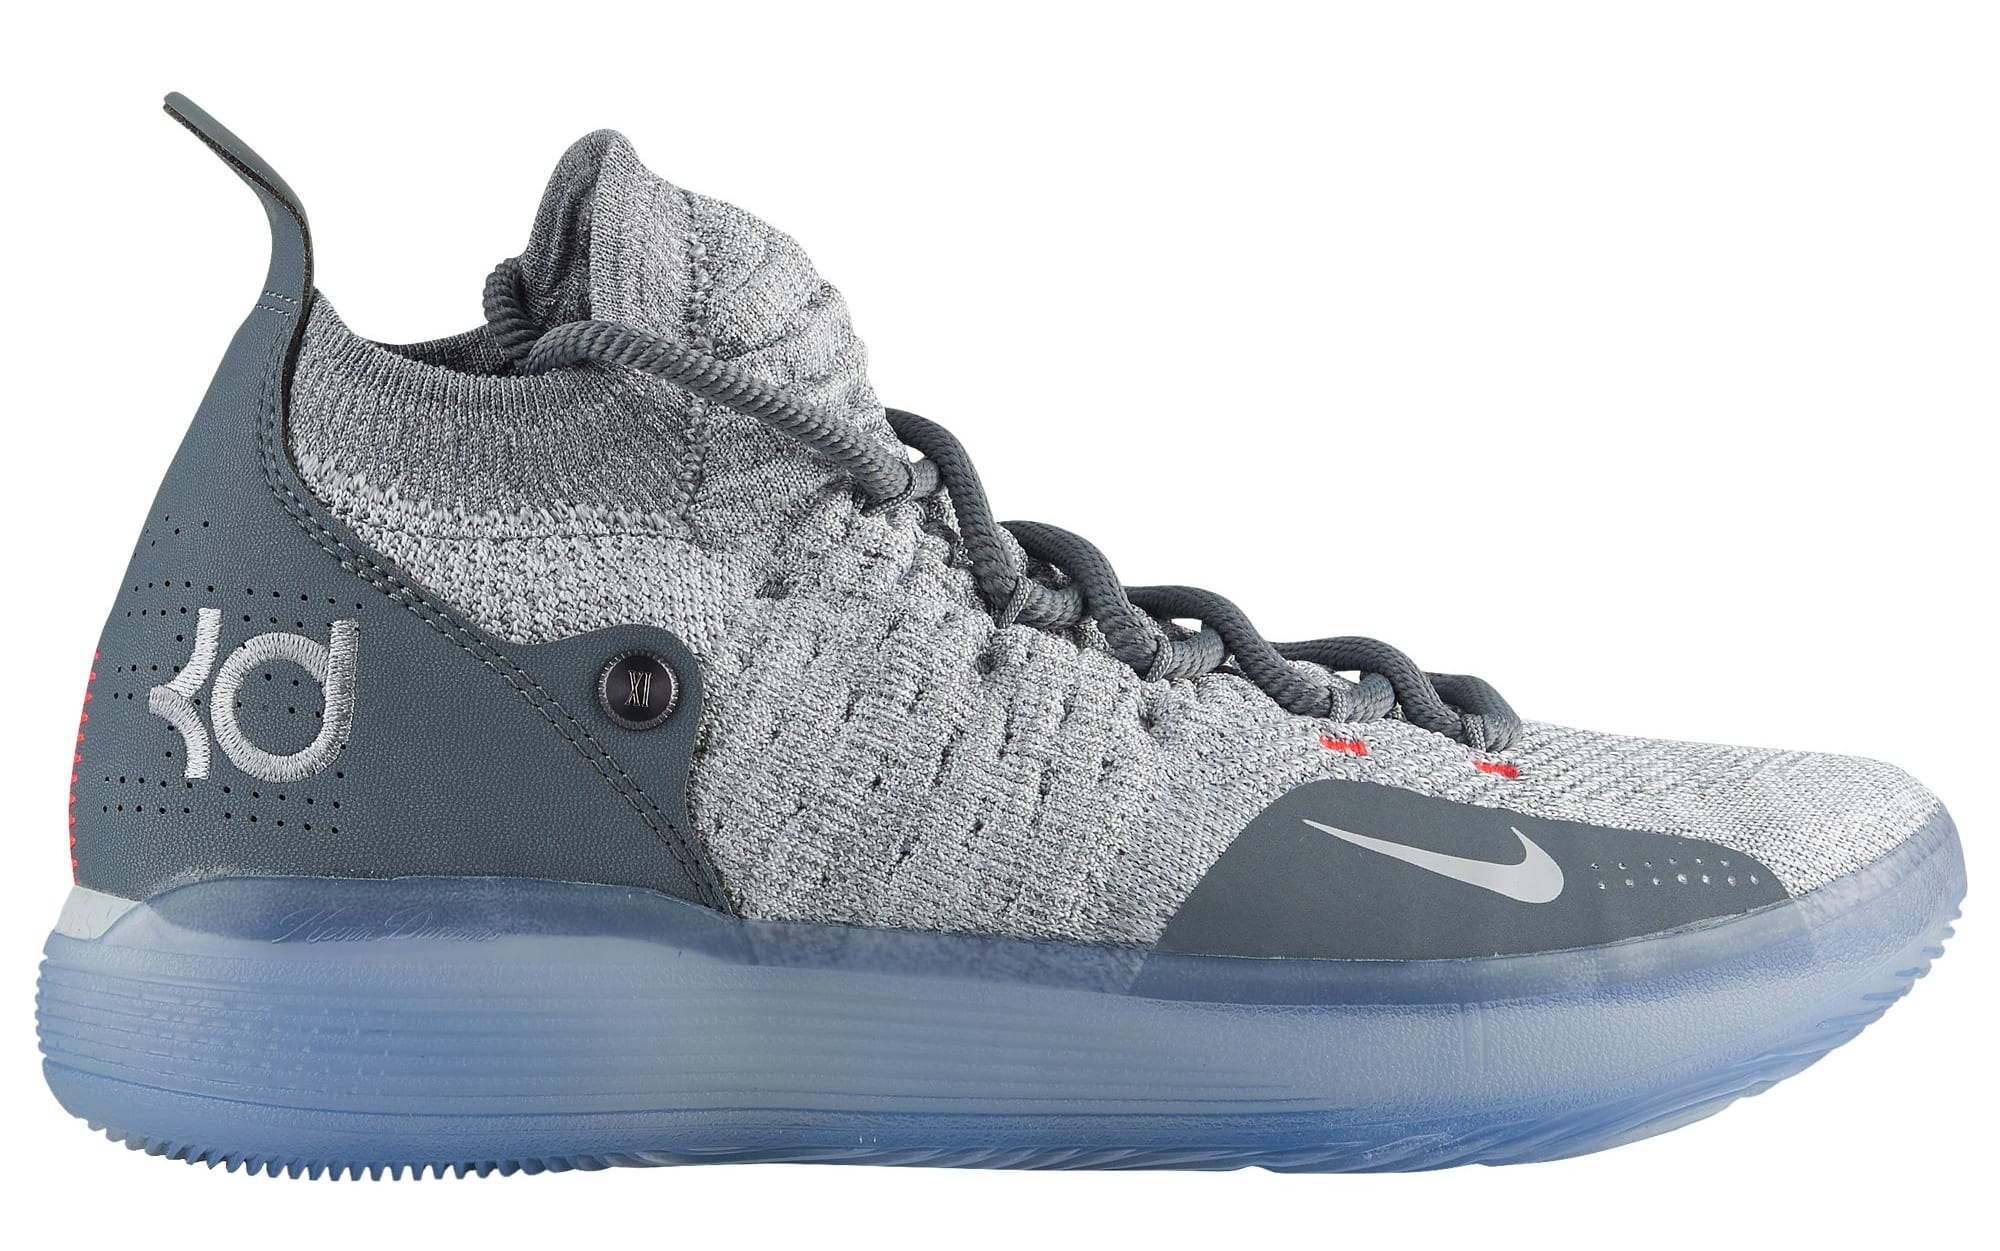 abedba668f43 canada nike kd 11 cool grey ao2604 002 lateral 5d2d6 ac71c